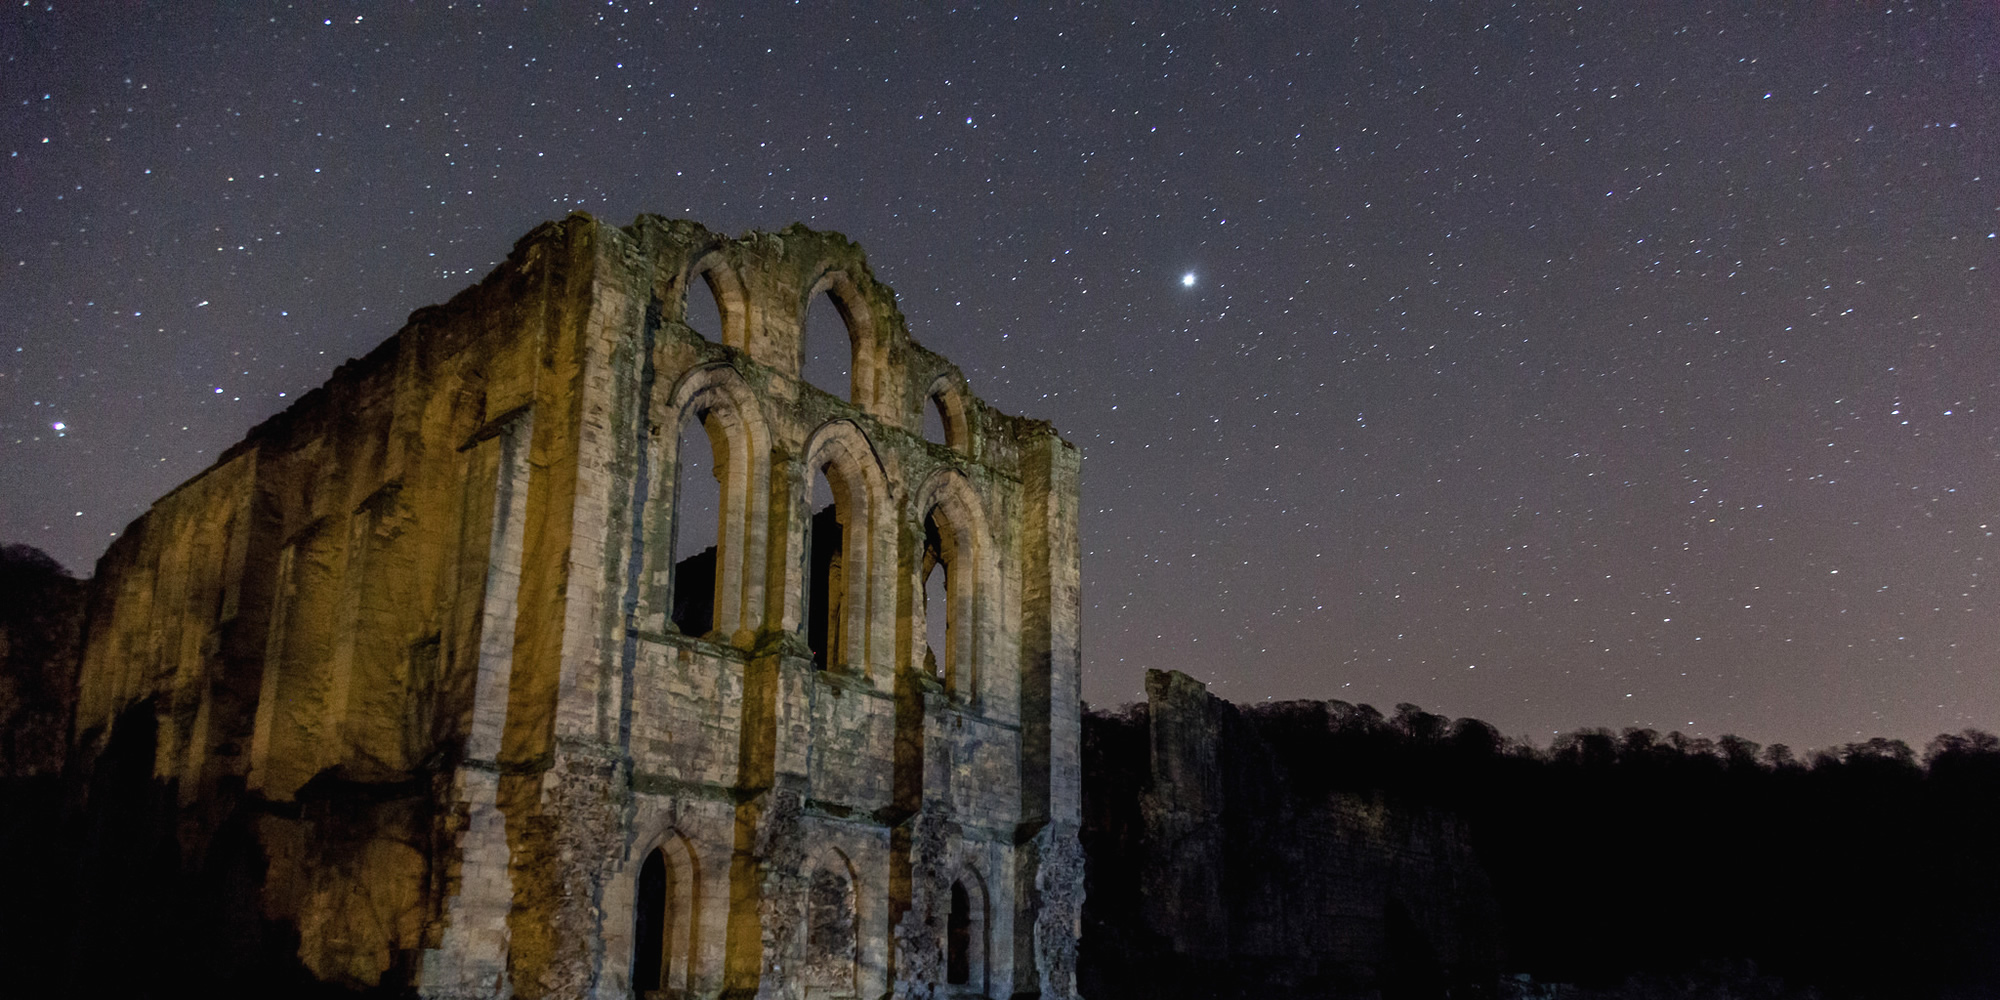 A deep starry sky over a ruined stone abbey